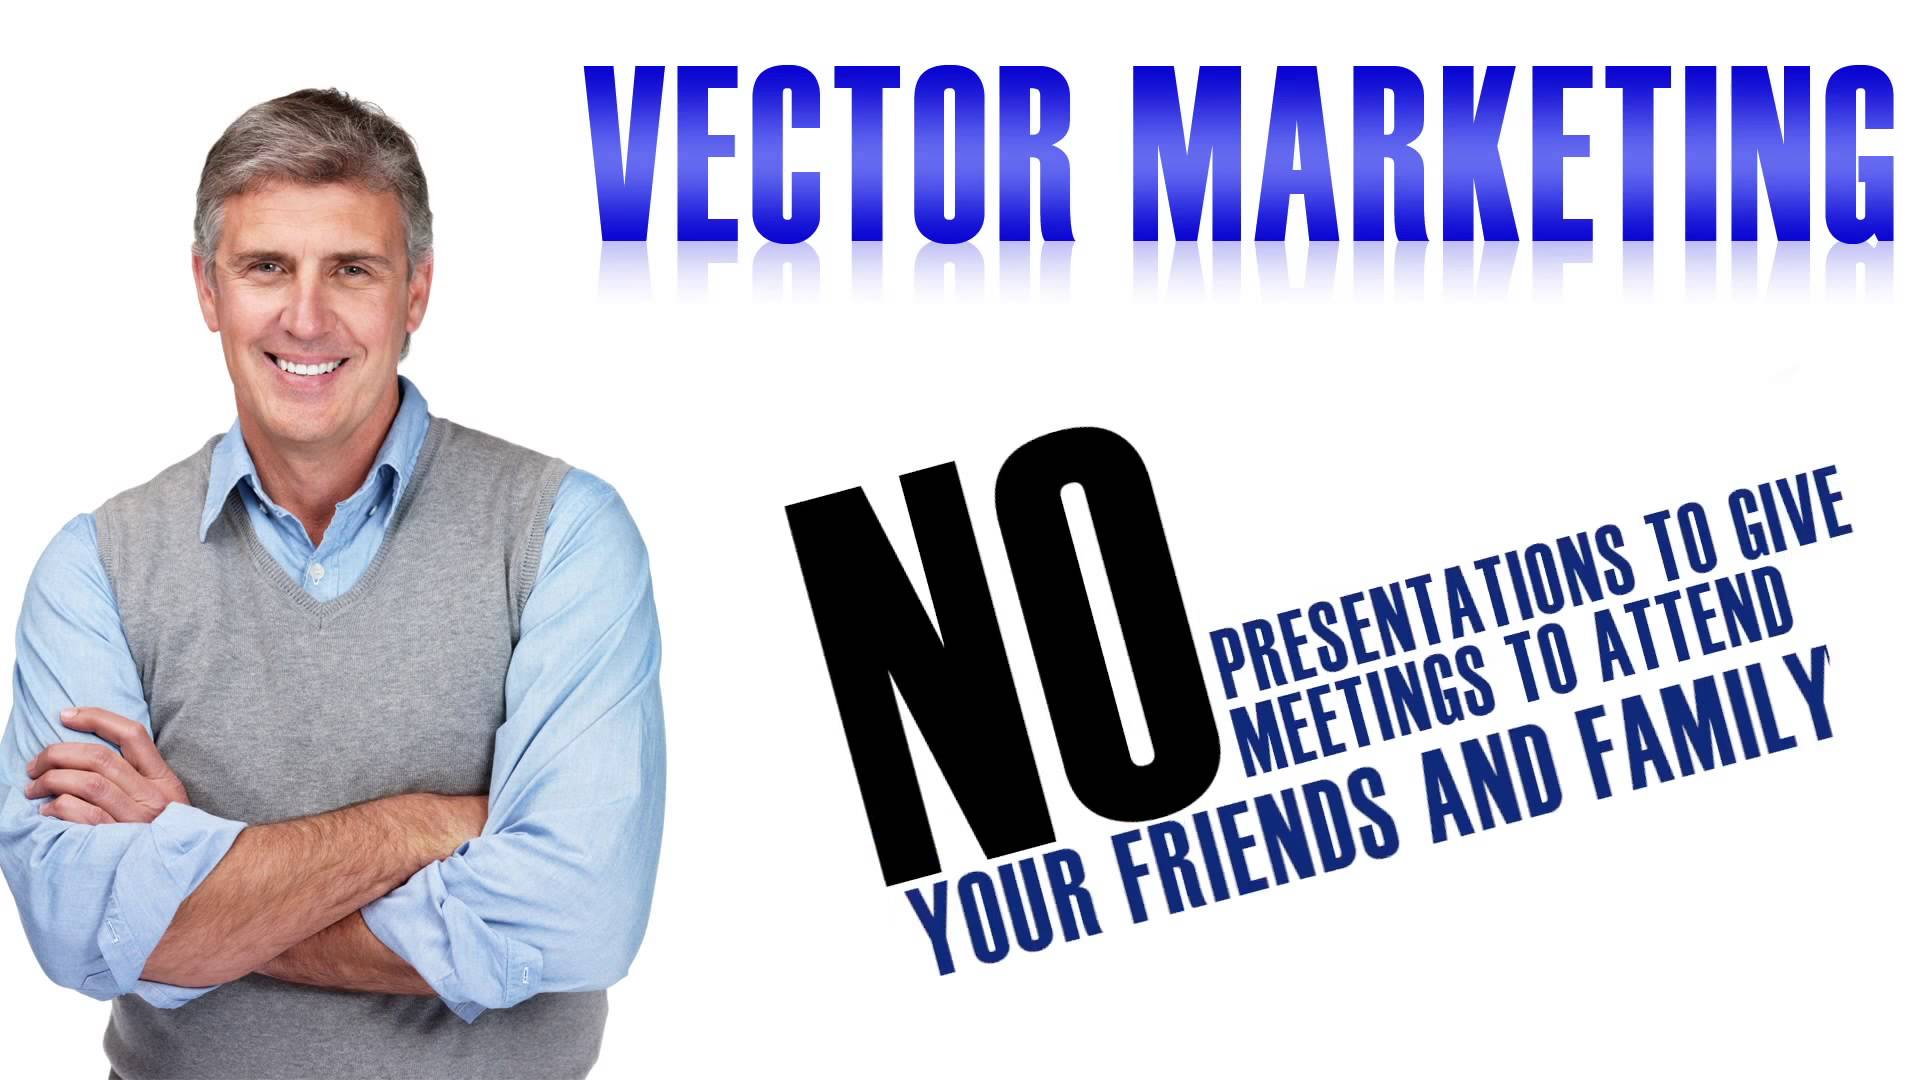 Wonderful vector marketing scams images